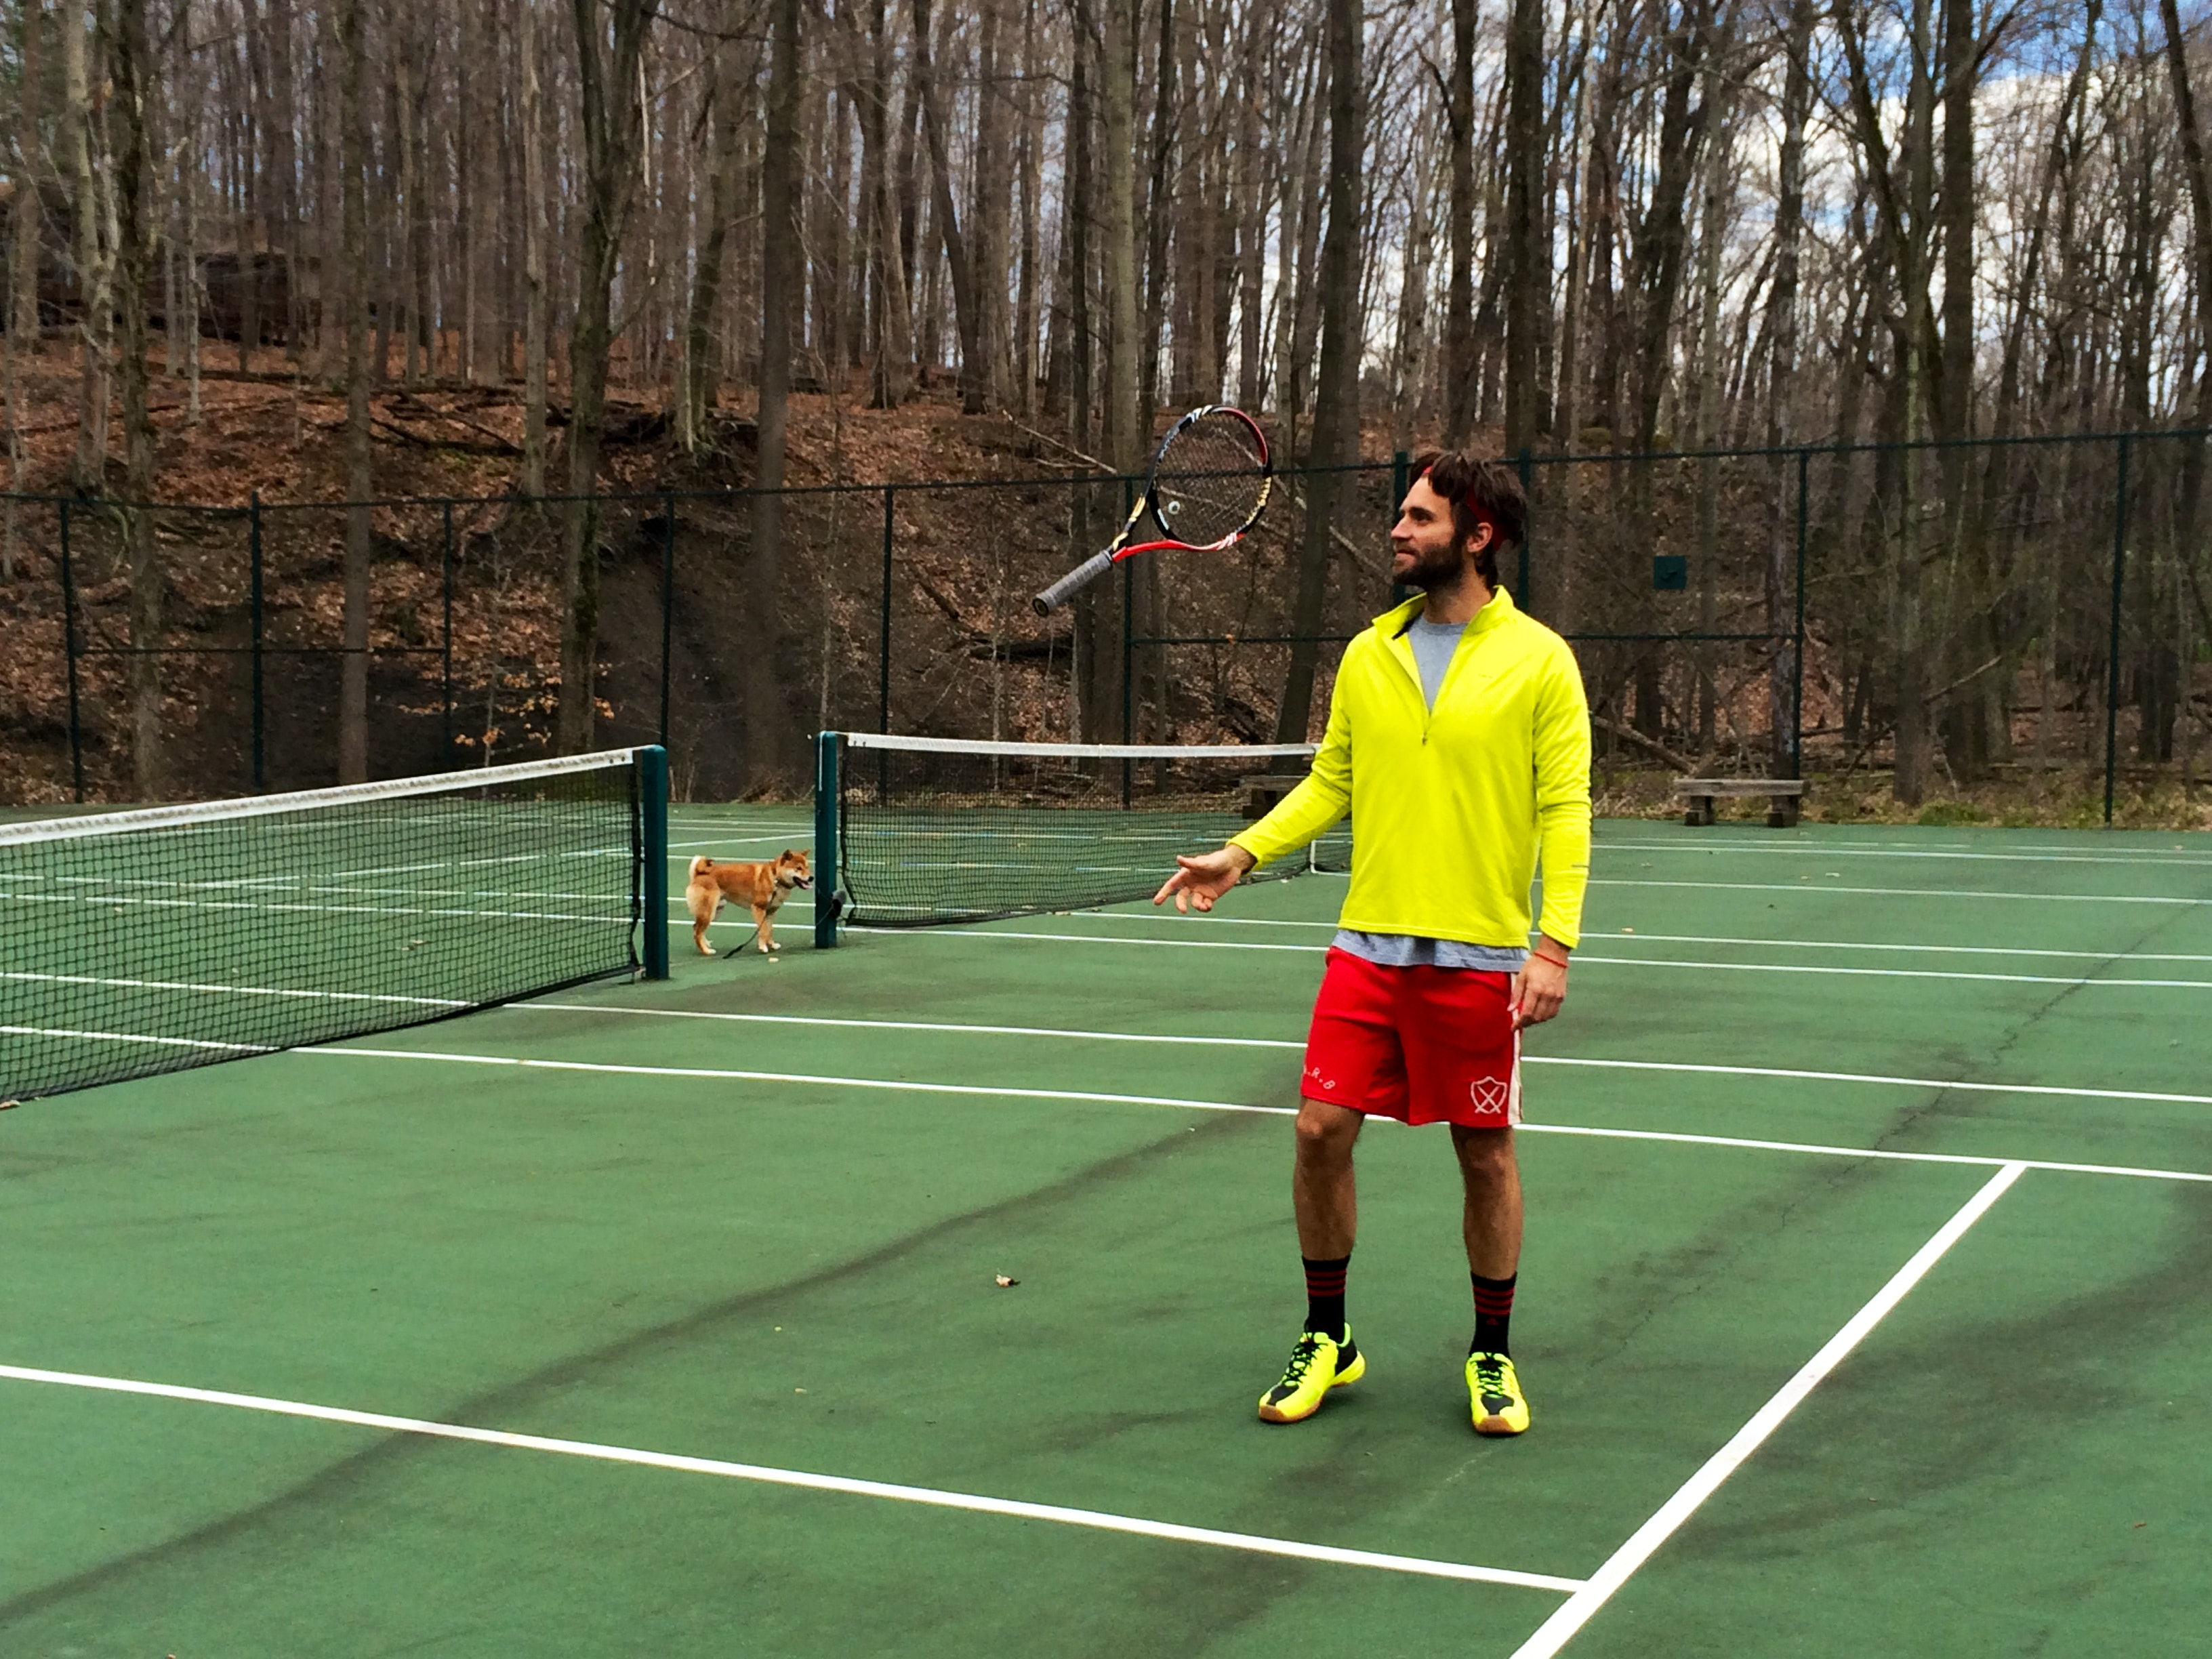 Janez A. teaches tennis lessons in Strongsville , OH